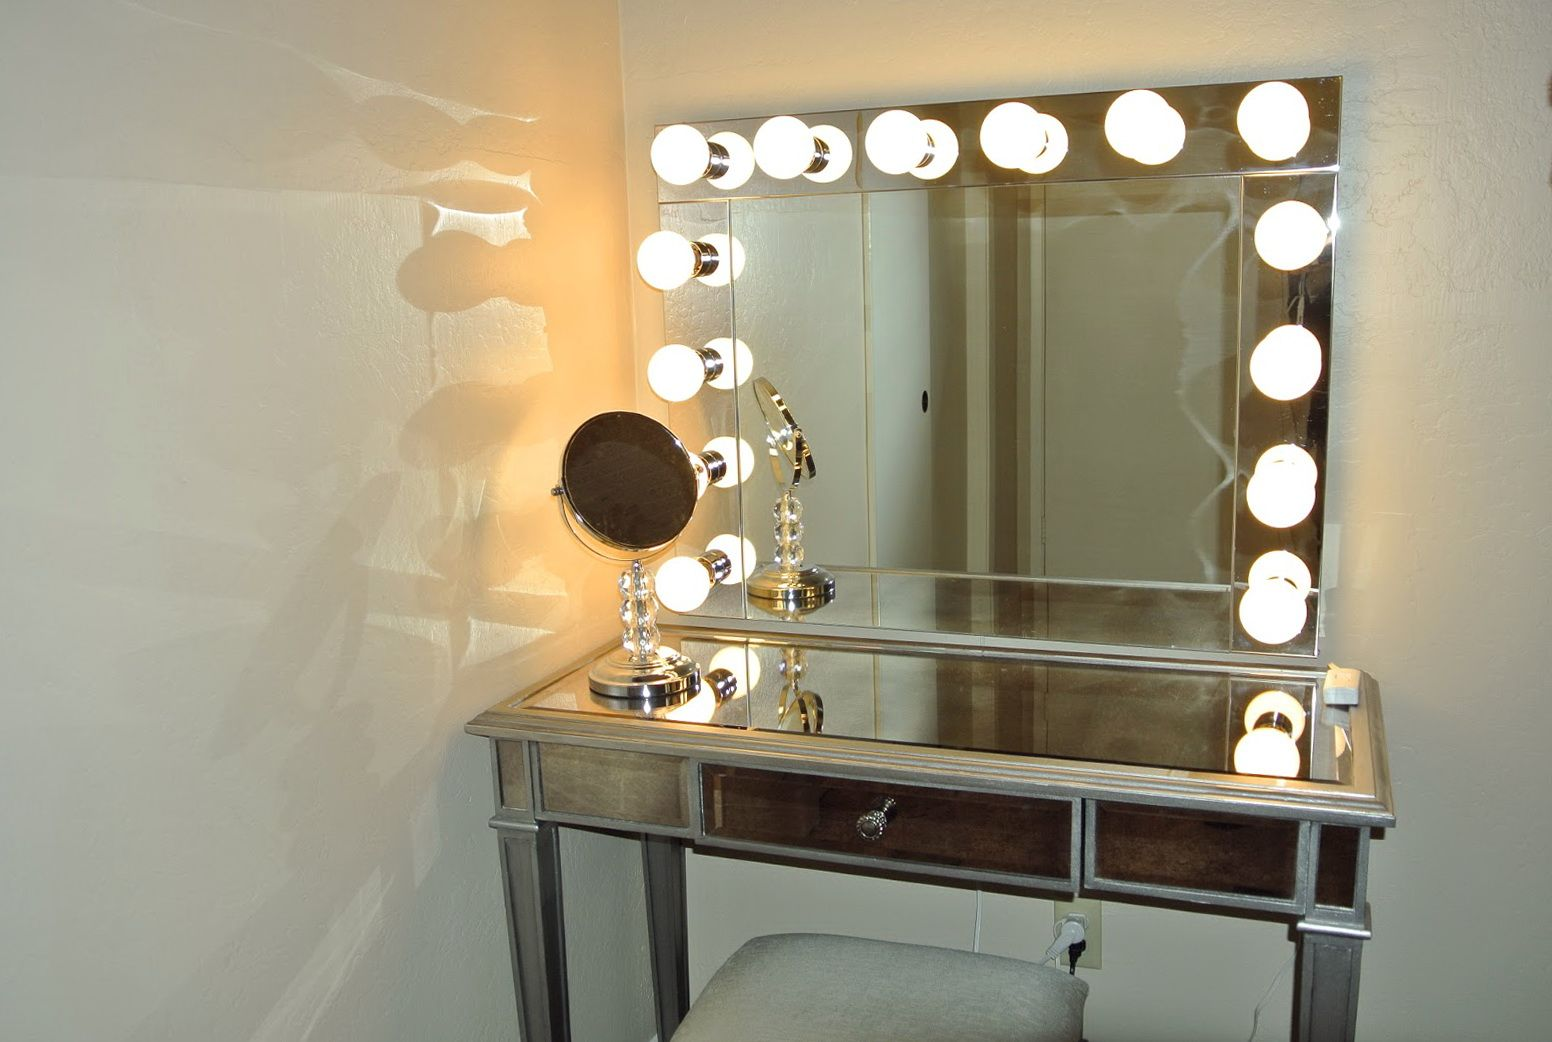 17 Best images about vanity on Pinterest | Lighted mirror ...:17 Best images about vanity on Pinterest | Lighted mirror, Vanities and  Dressing tables,Lighting